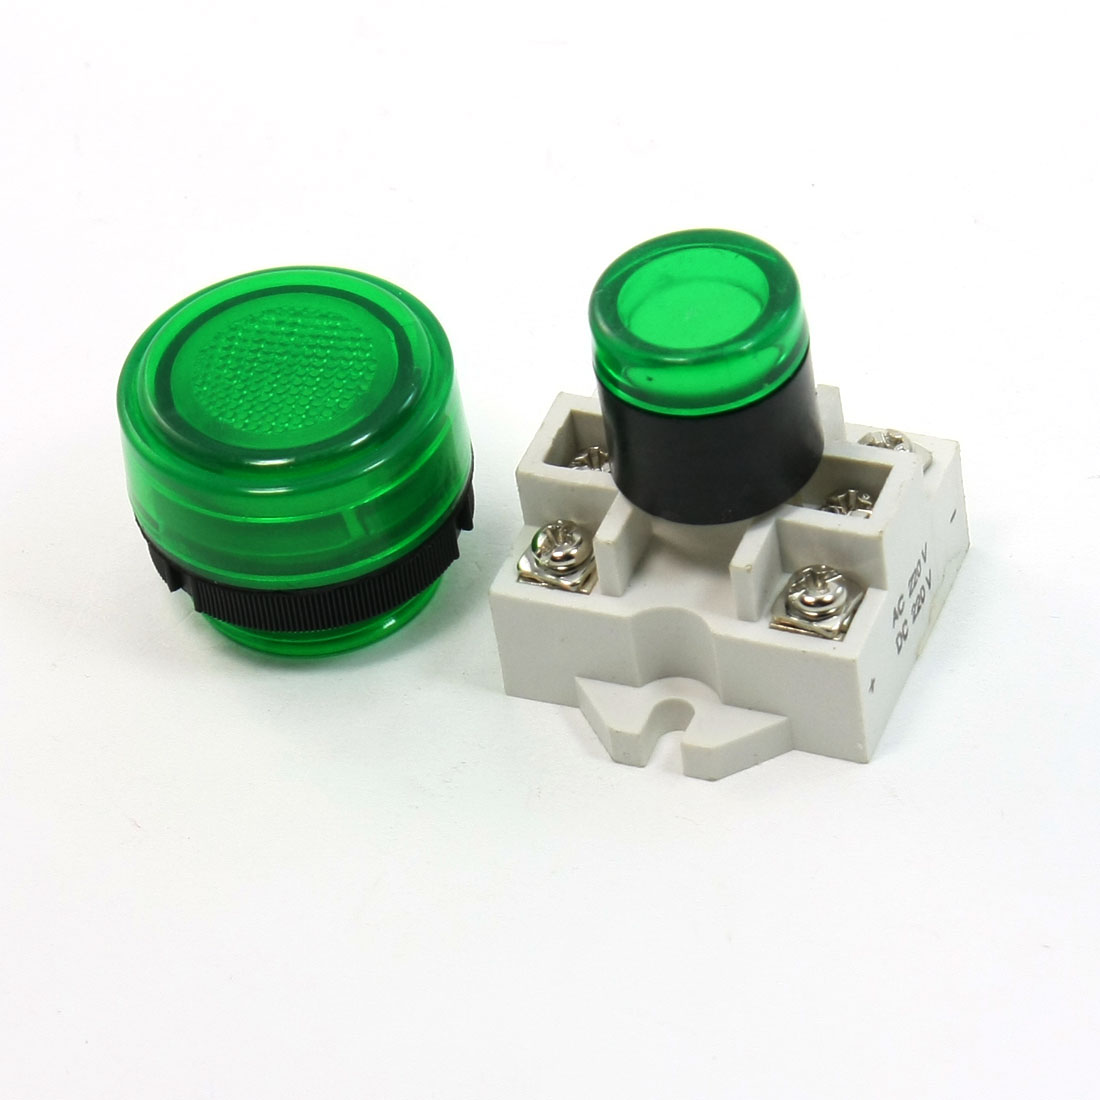 AC 220V 6-Terminals Green Round Head 4mm Mounted Signal Indicator Lamp